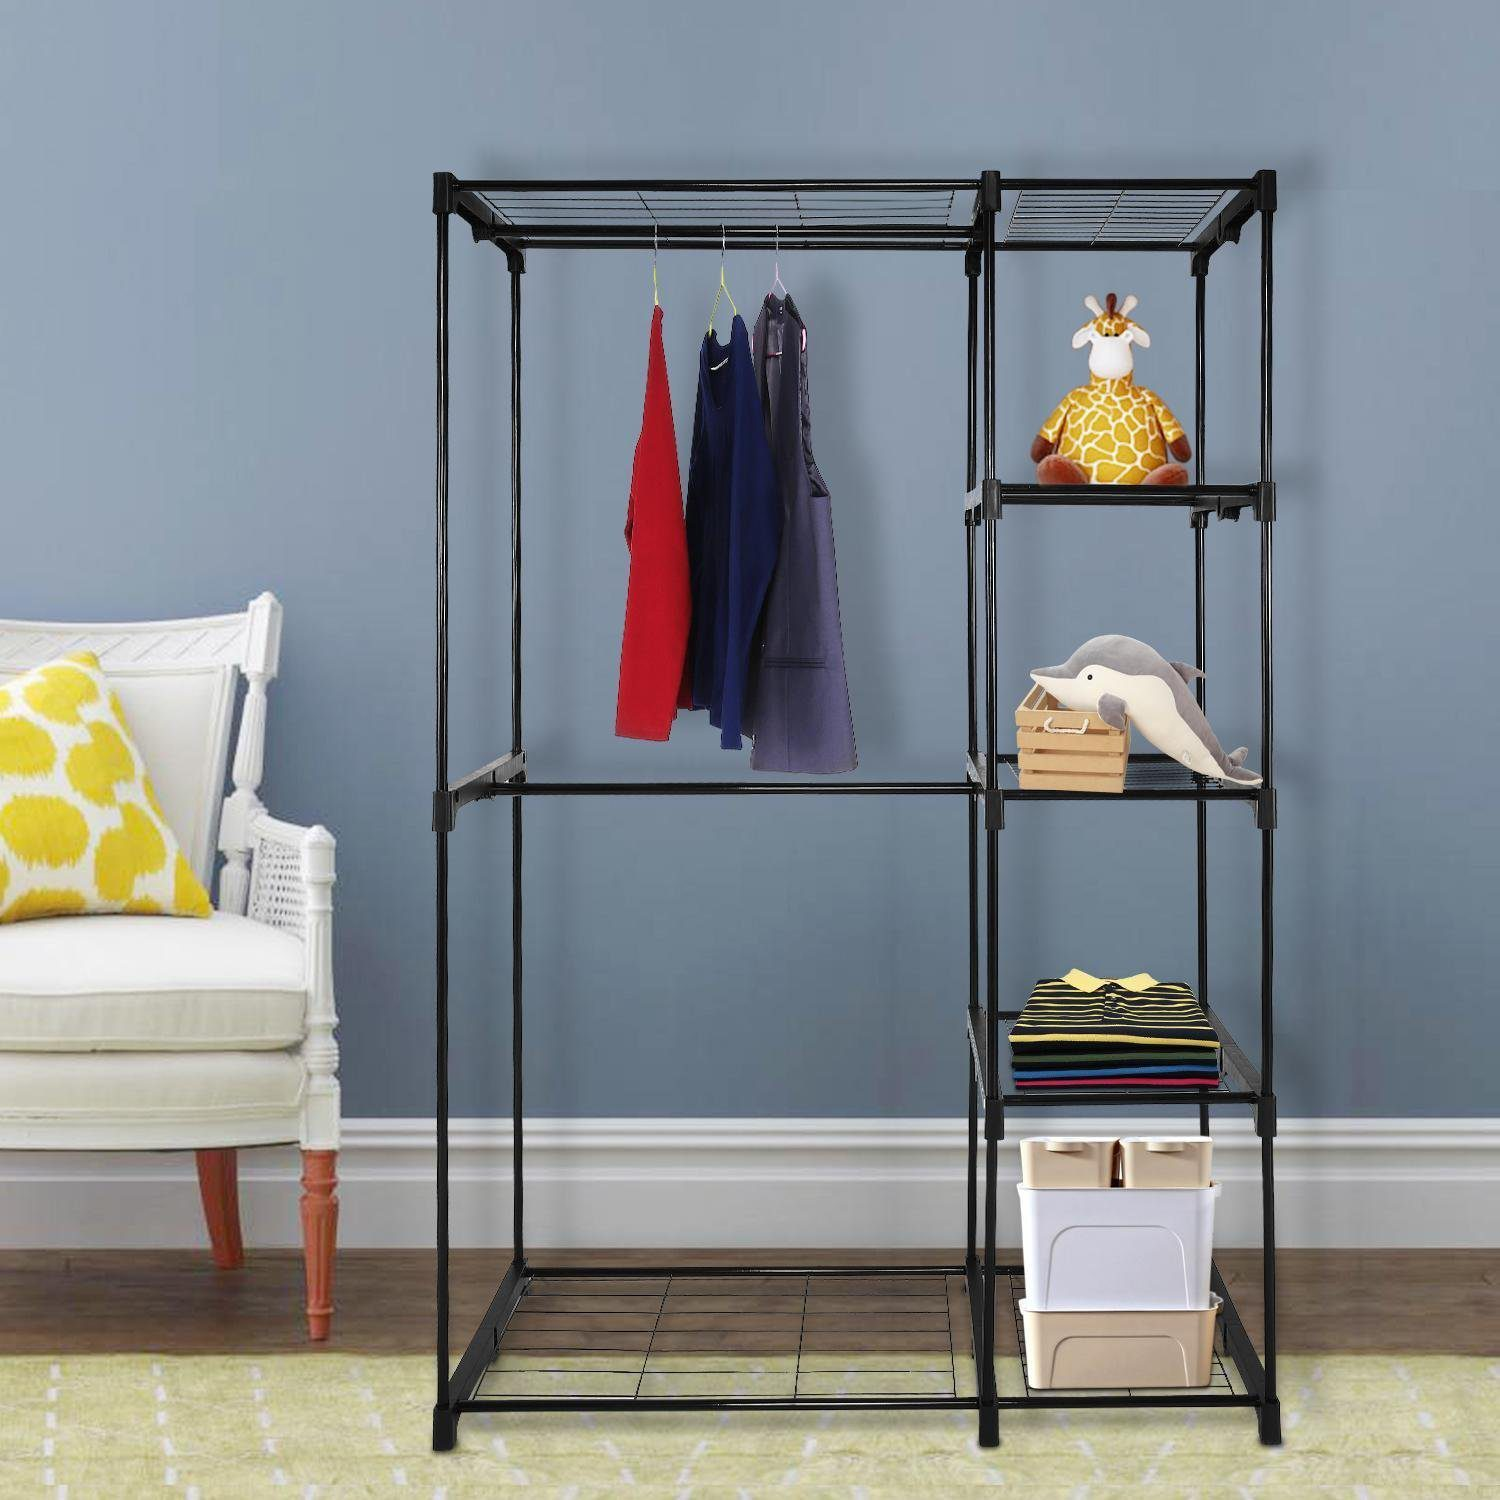 Deals Finders | Amazon : Double Rod Freestanding Closet Organizer Just  $39.89 (Reg : $56.99) After Promo Code!